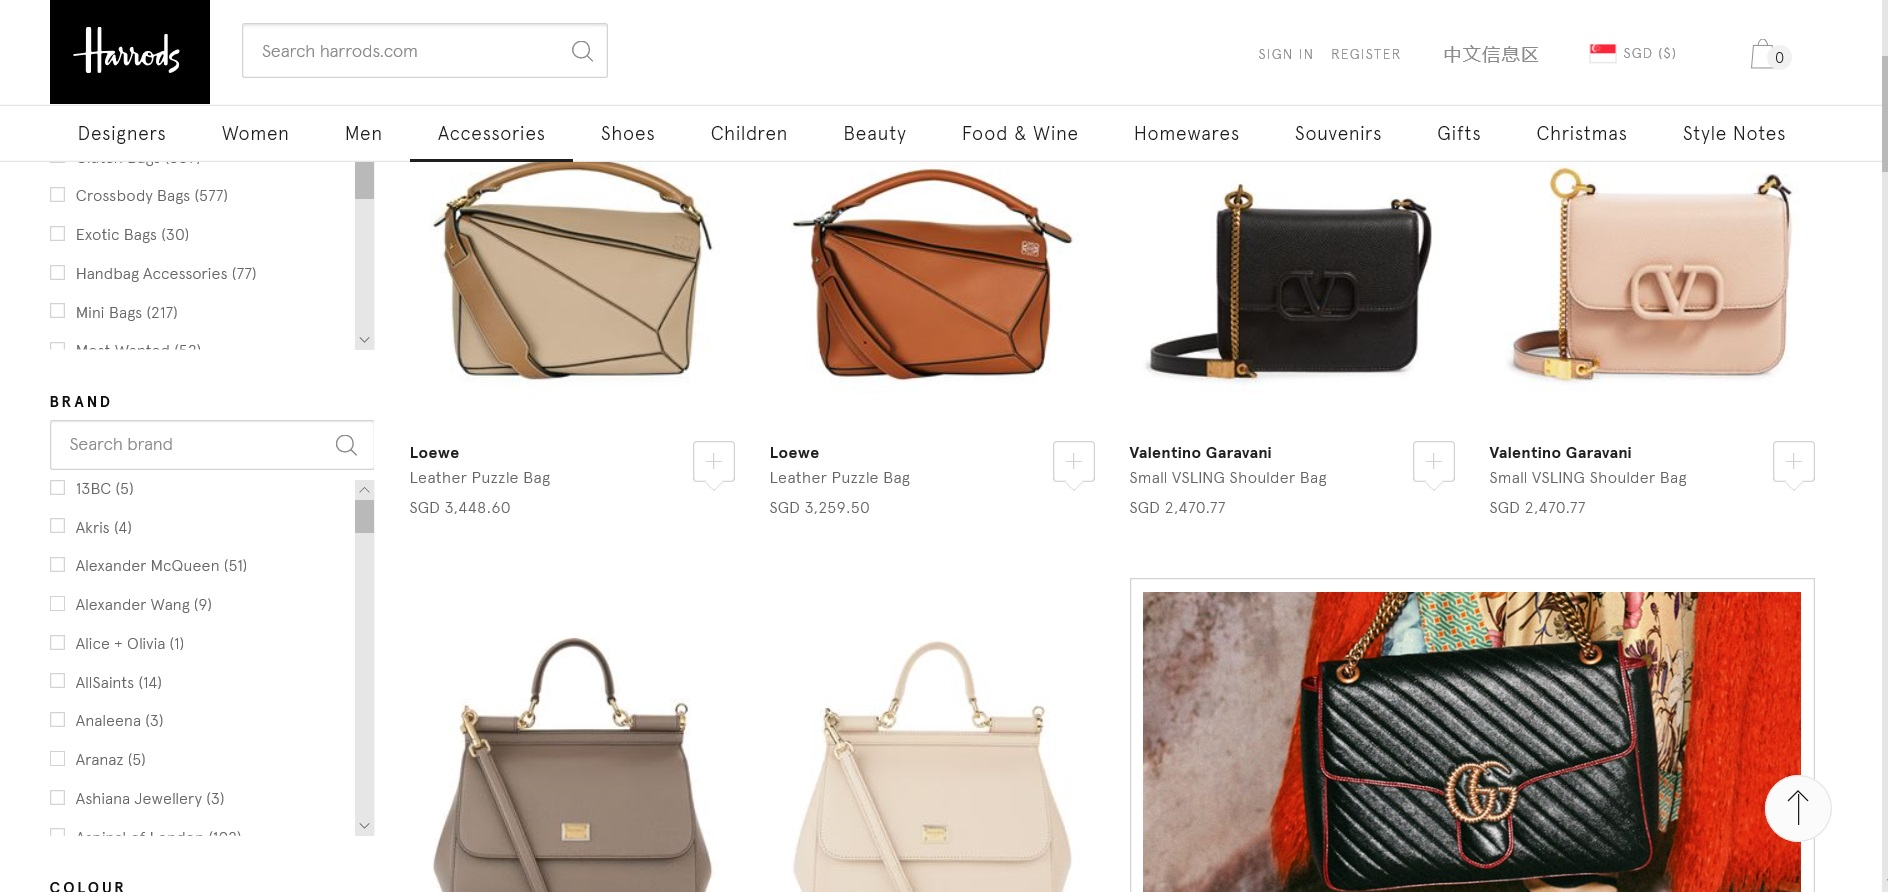 Product catalogue of women s bags.